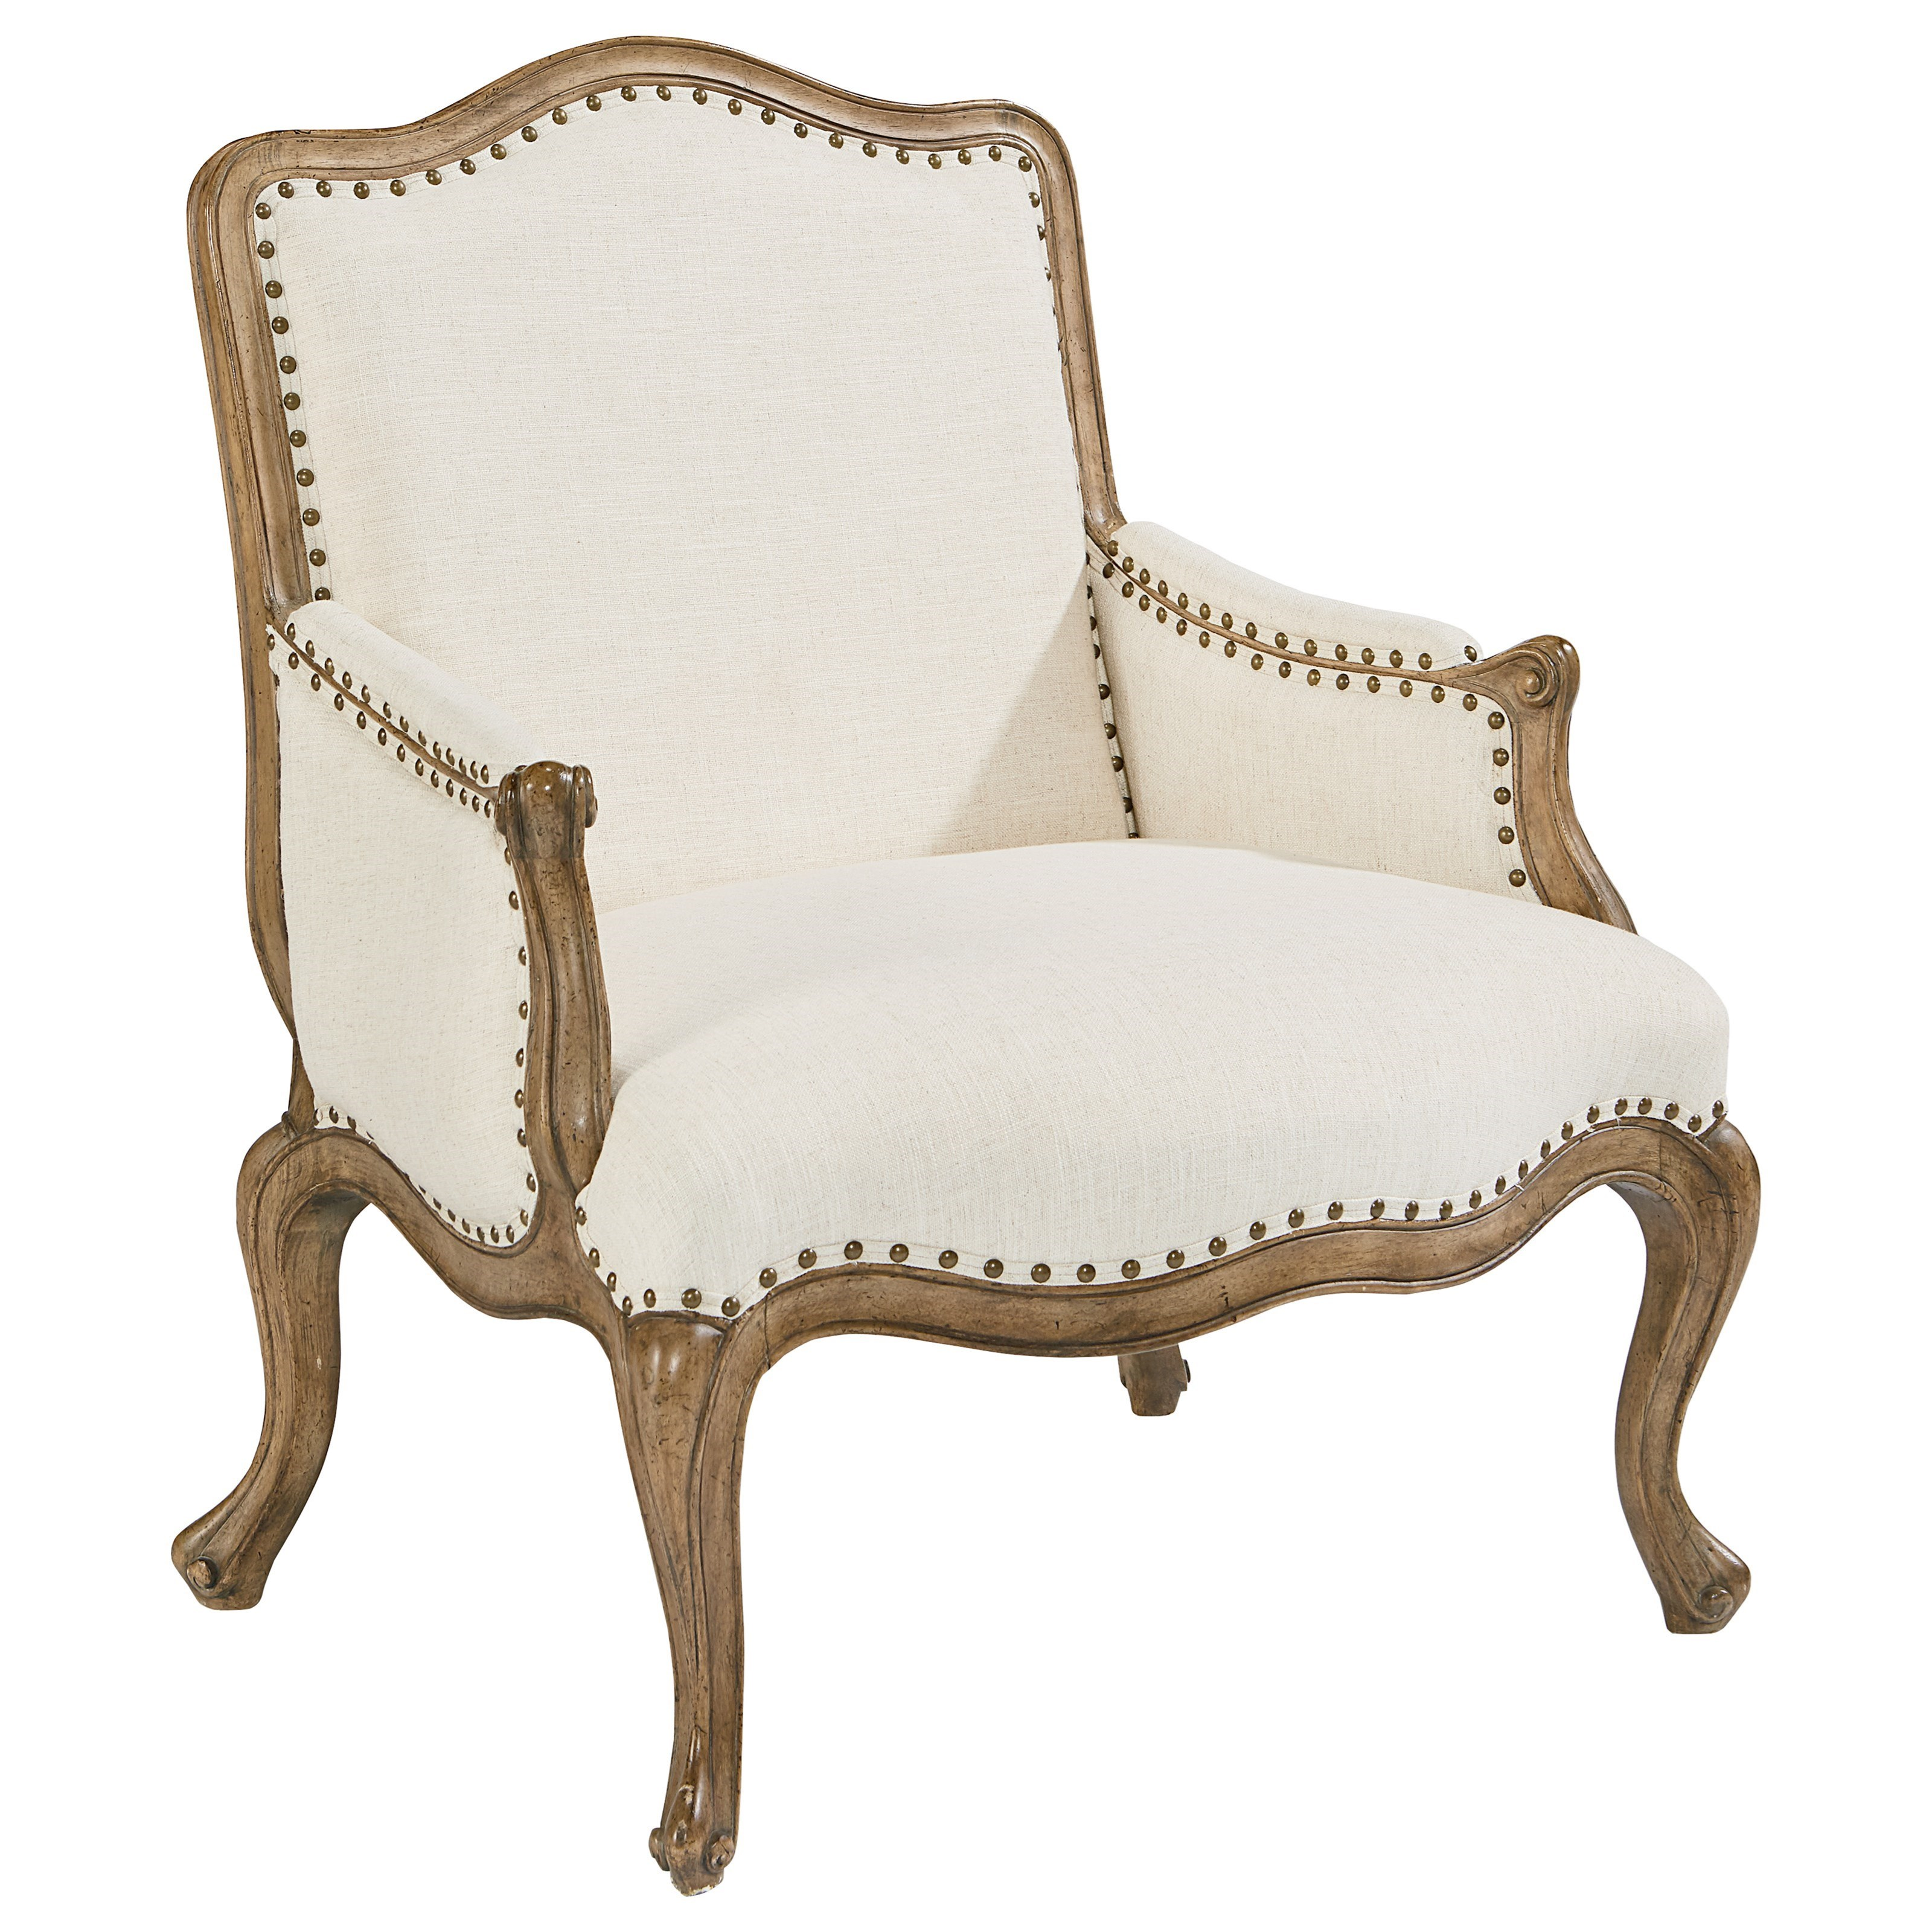 Magnolia Home by Joanna Gaines Accent Chairs Upholstered Chair - Item Number: 80615010